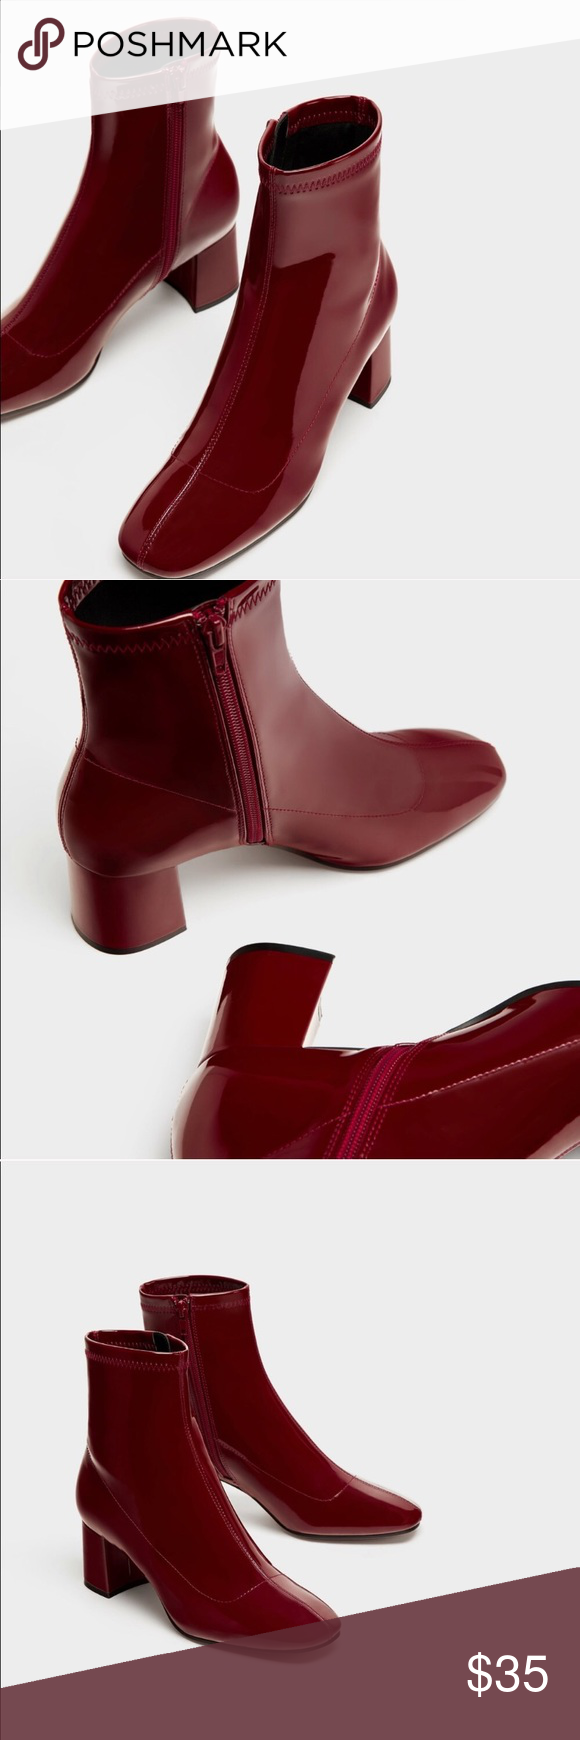 5ca213d9b87 NWT! Burgundy Patent Zara Booties never worn - brand new with tags ...